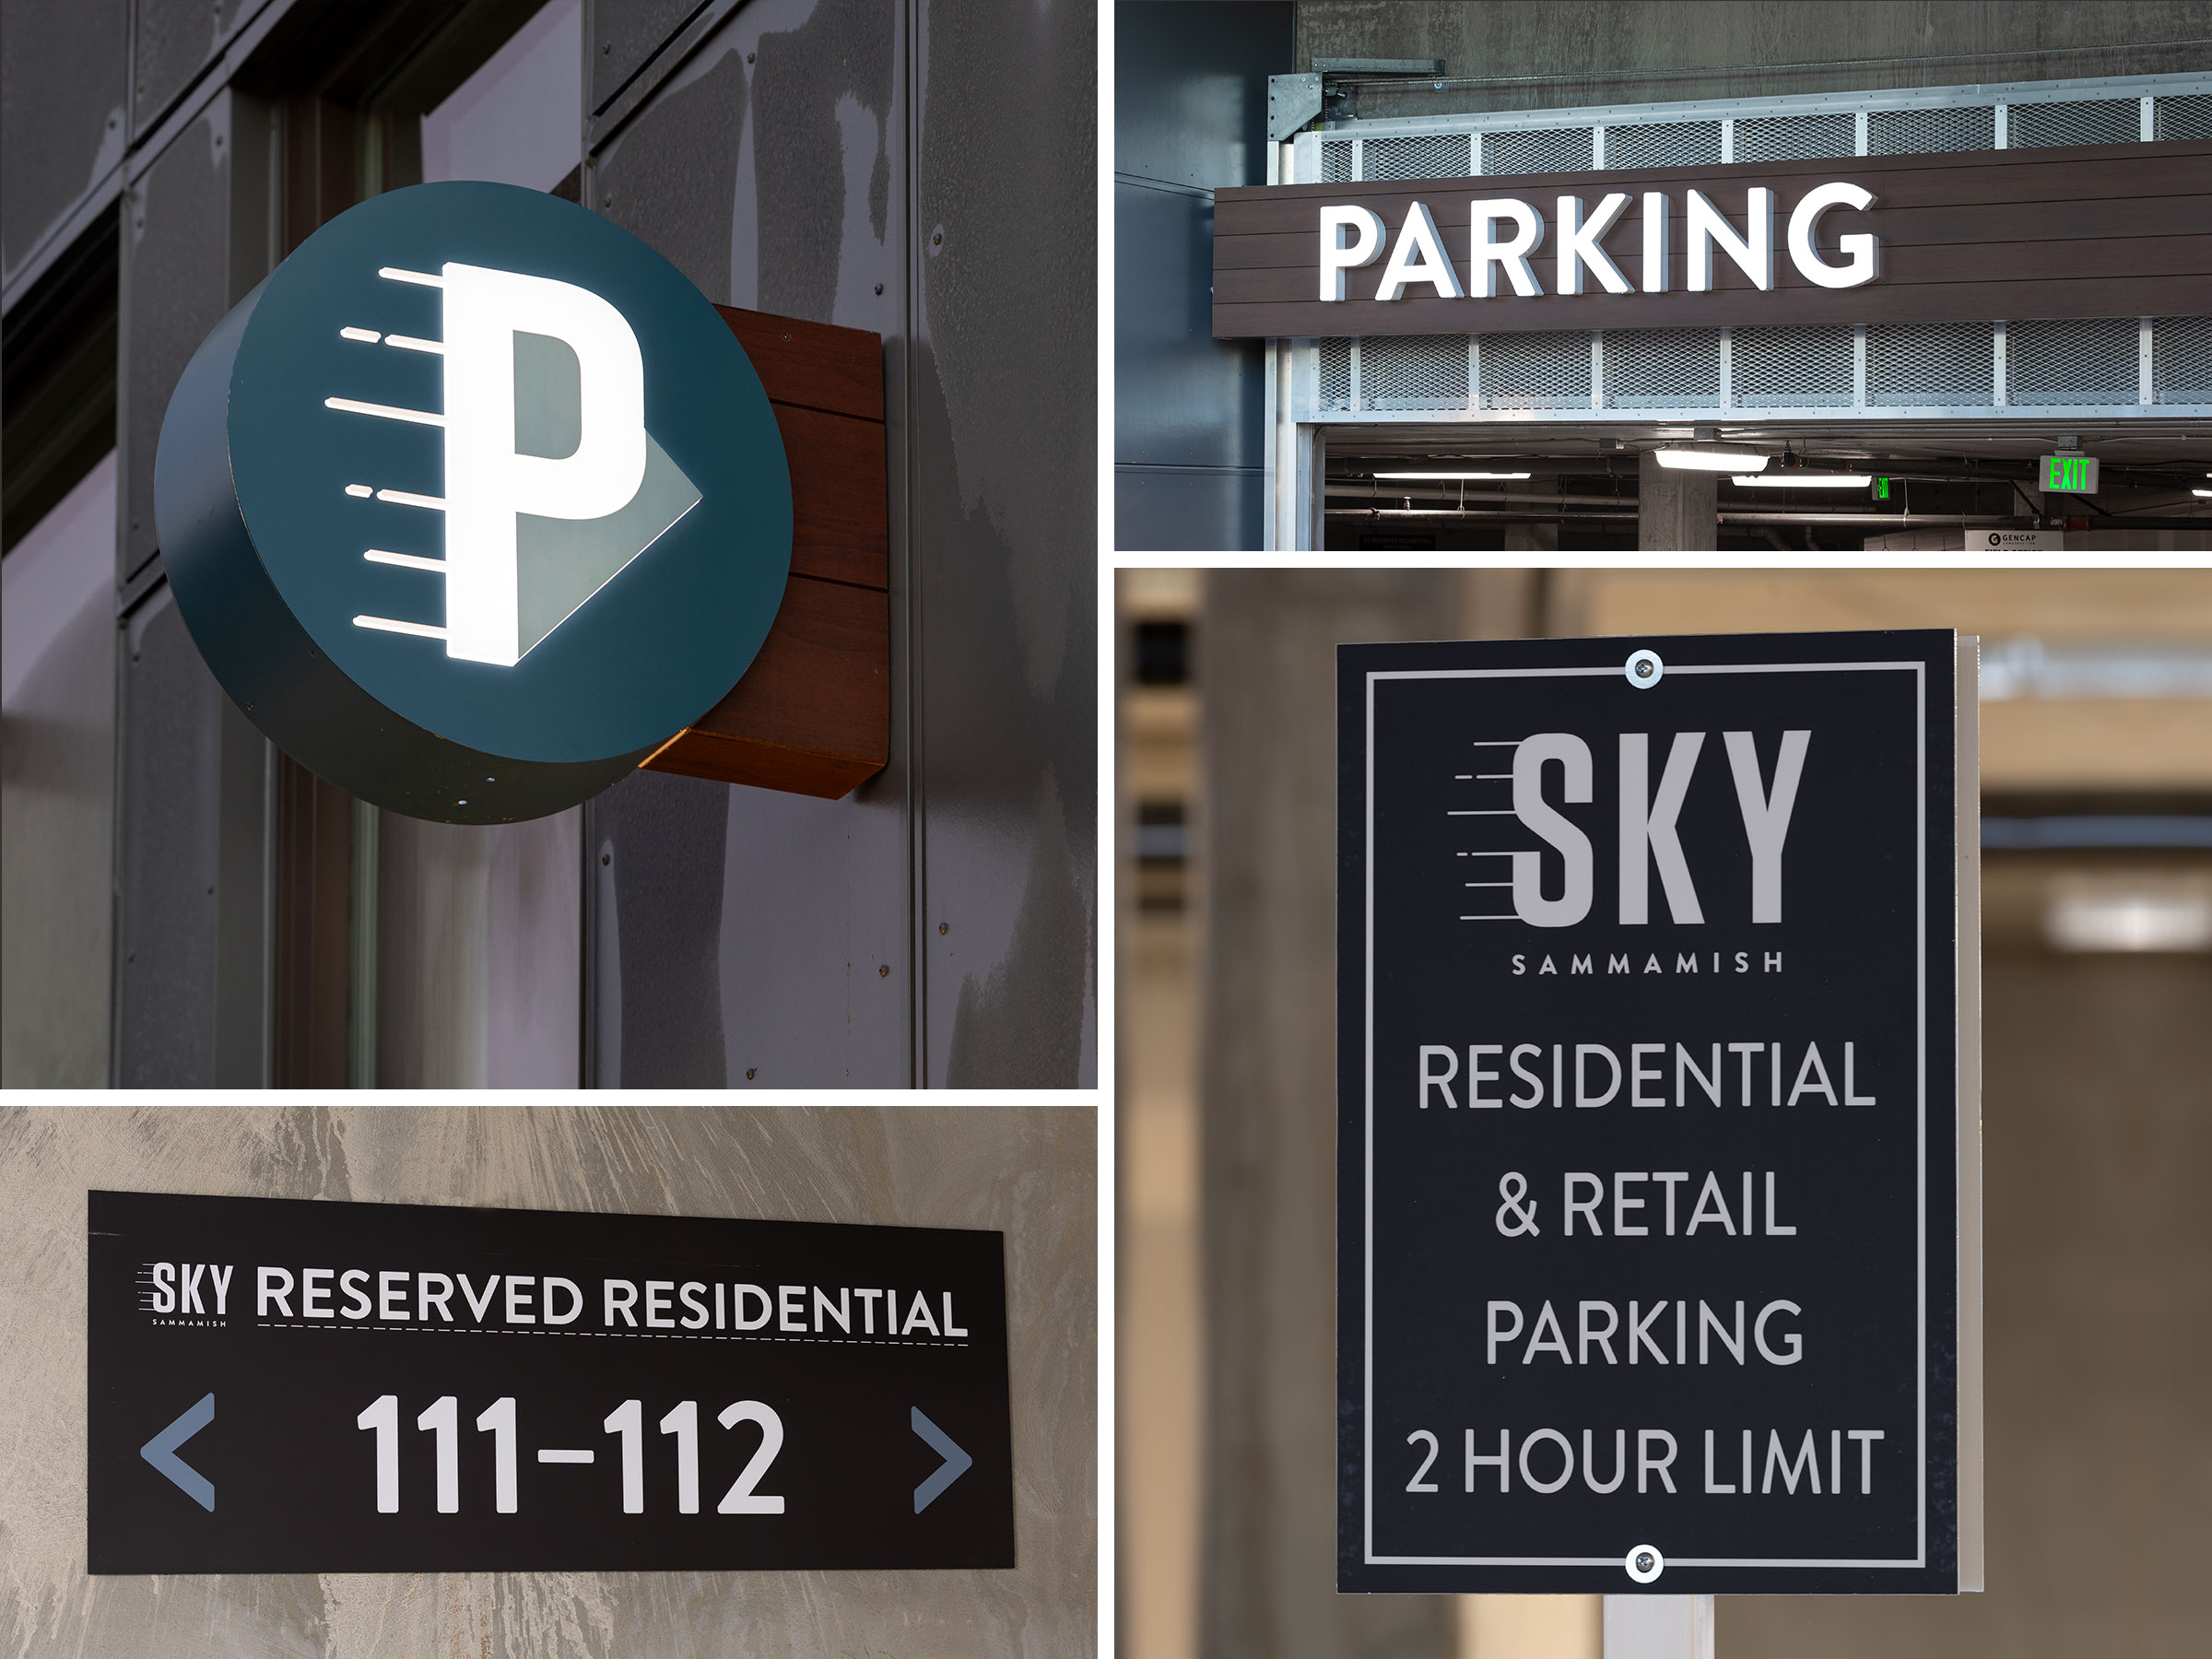 It is imperative that parking signage is intuitive to the patrons of SKY Sammamish. We made these signs consistent by using white typography on dark tone backgrounds; the result is a cohesive and easy to read parking sign package.